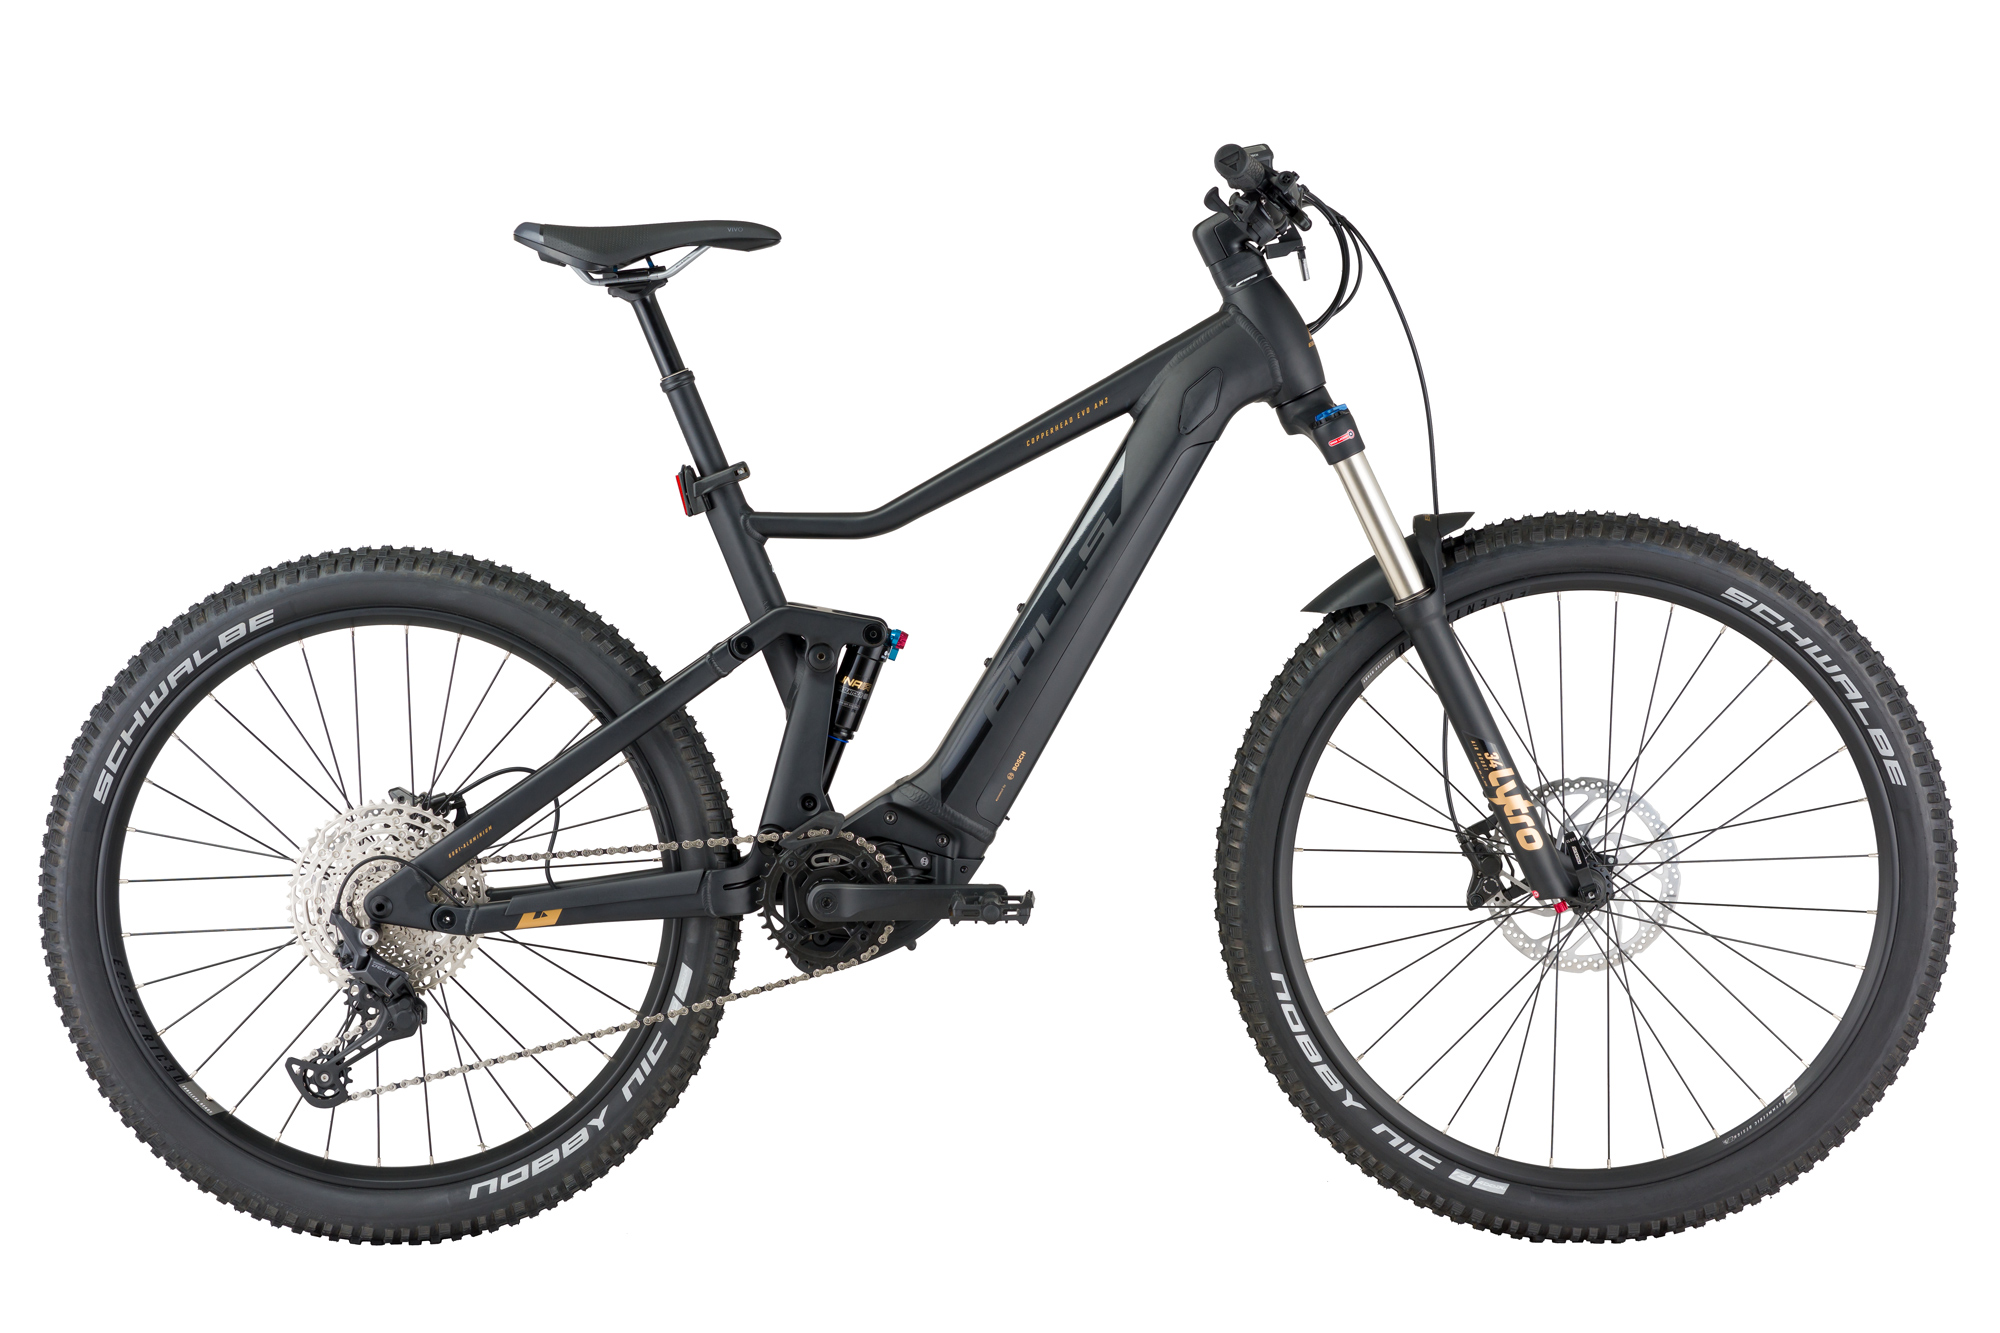 BULLS Copperhead EVO AM 2 27,5+ 625 Wh - * Jubiläumsedition * - 2021